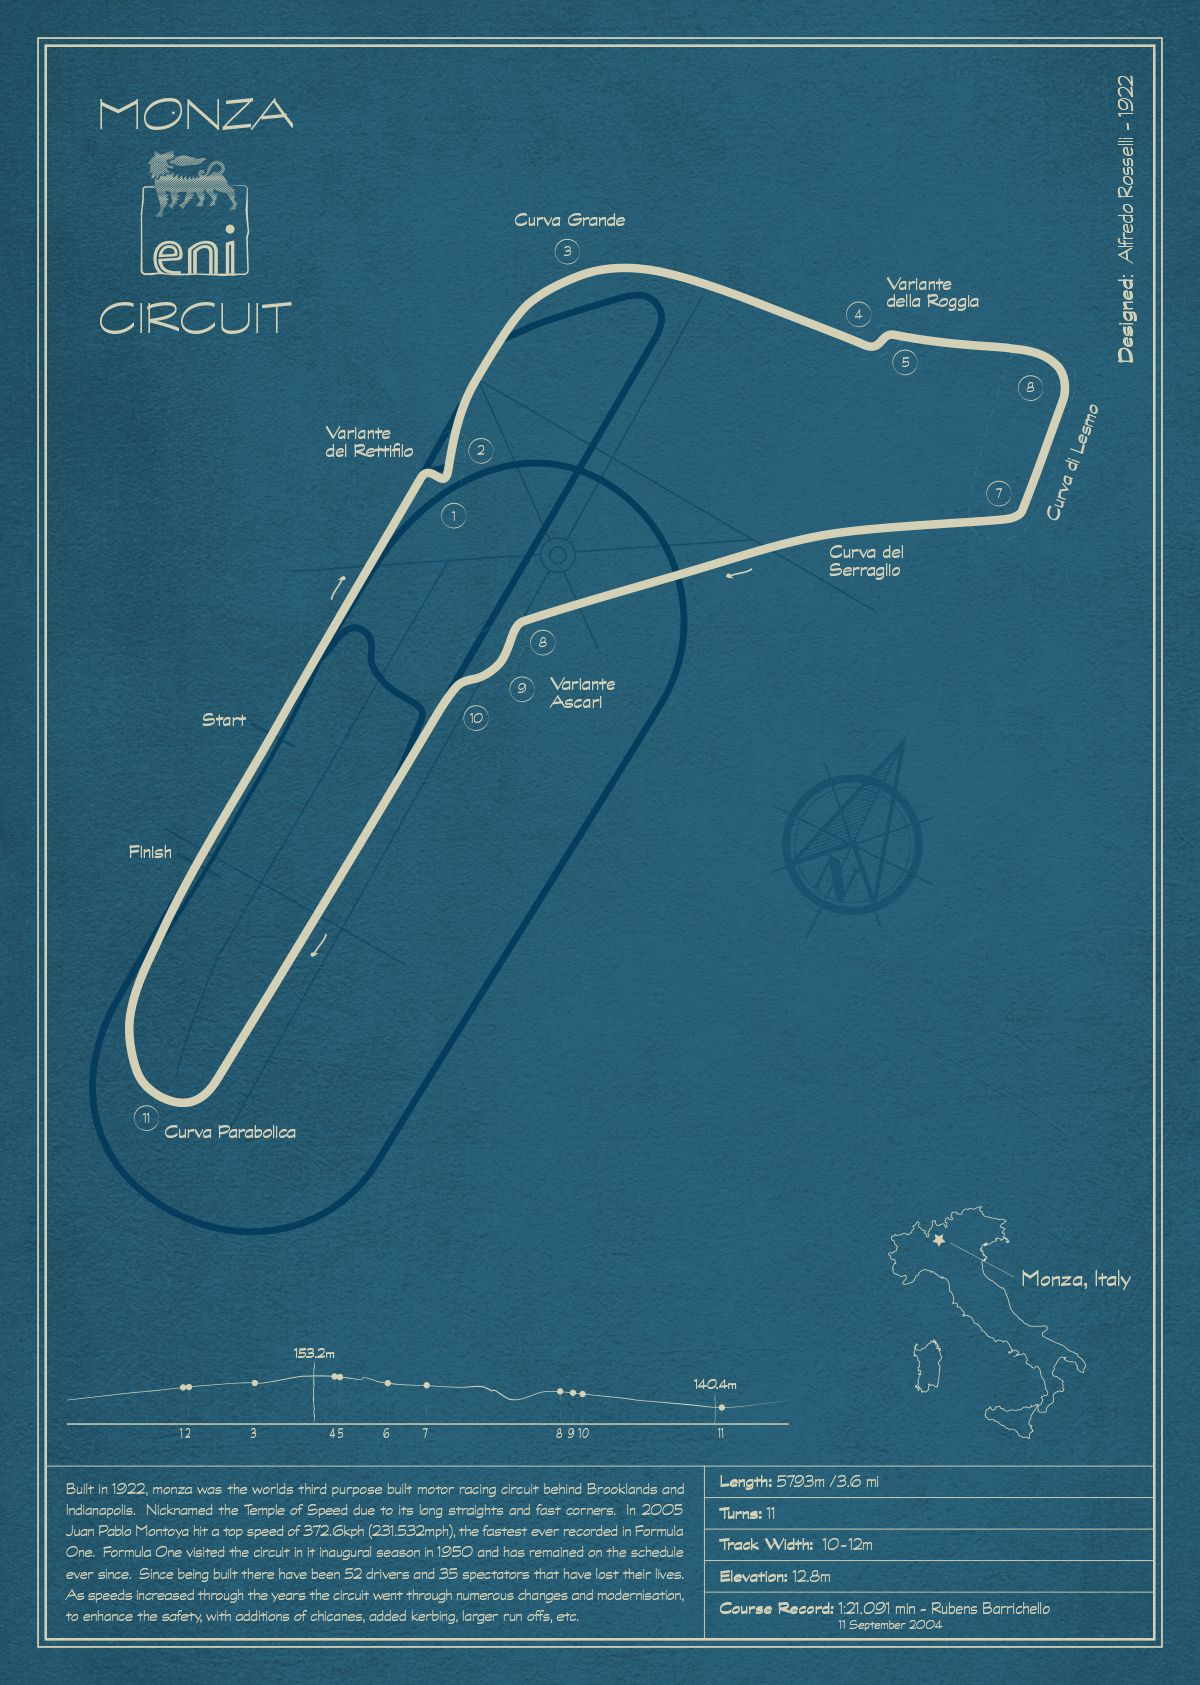 hight resolution of monza circuit track map blueprint